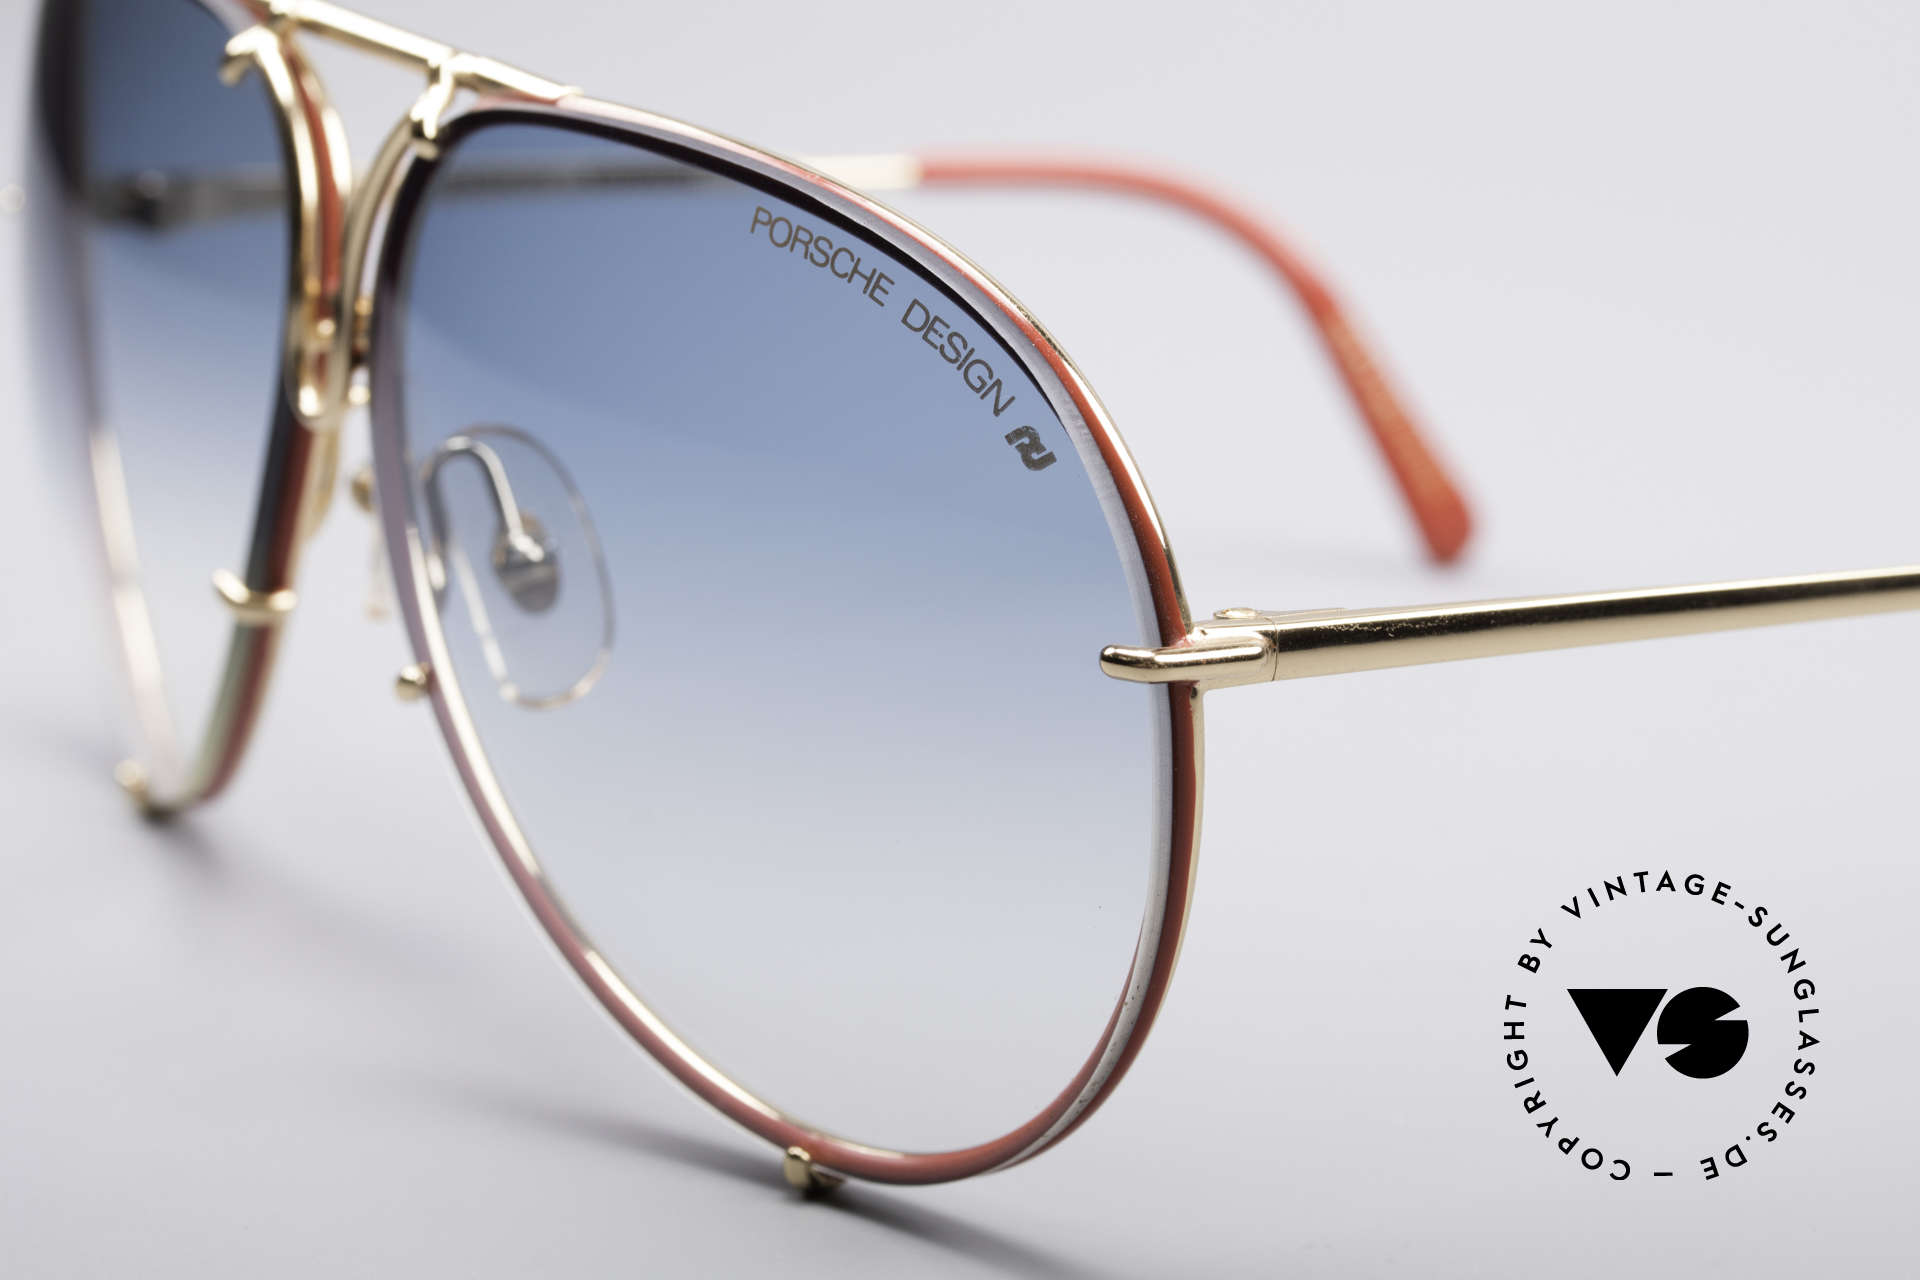 Porsche 5623 Limited Special Edition, 125mm short temples = ladies size (fits small heads), Made for Women